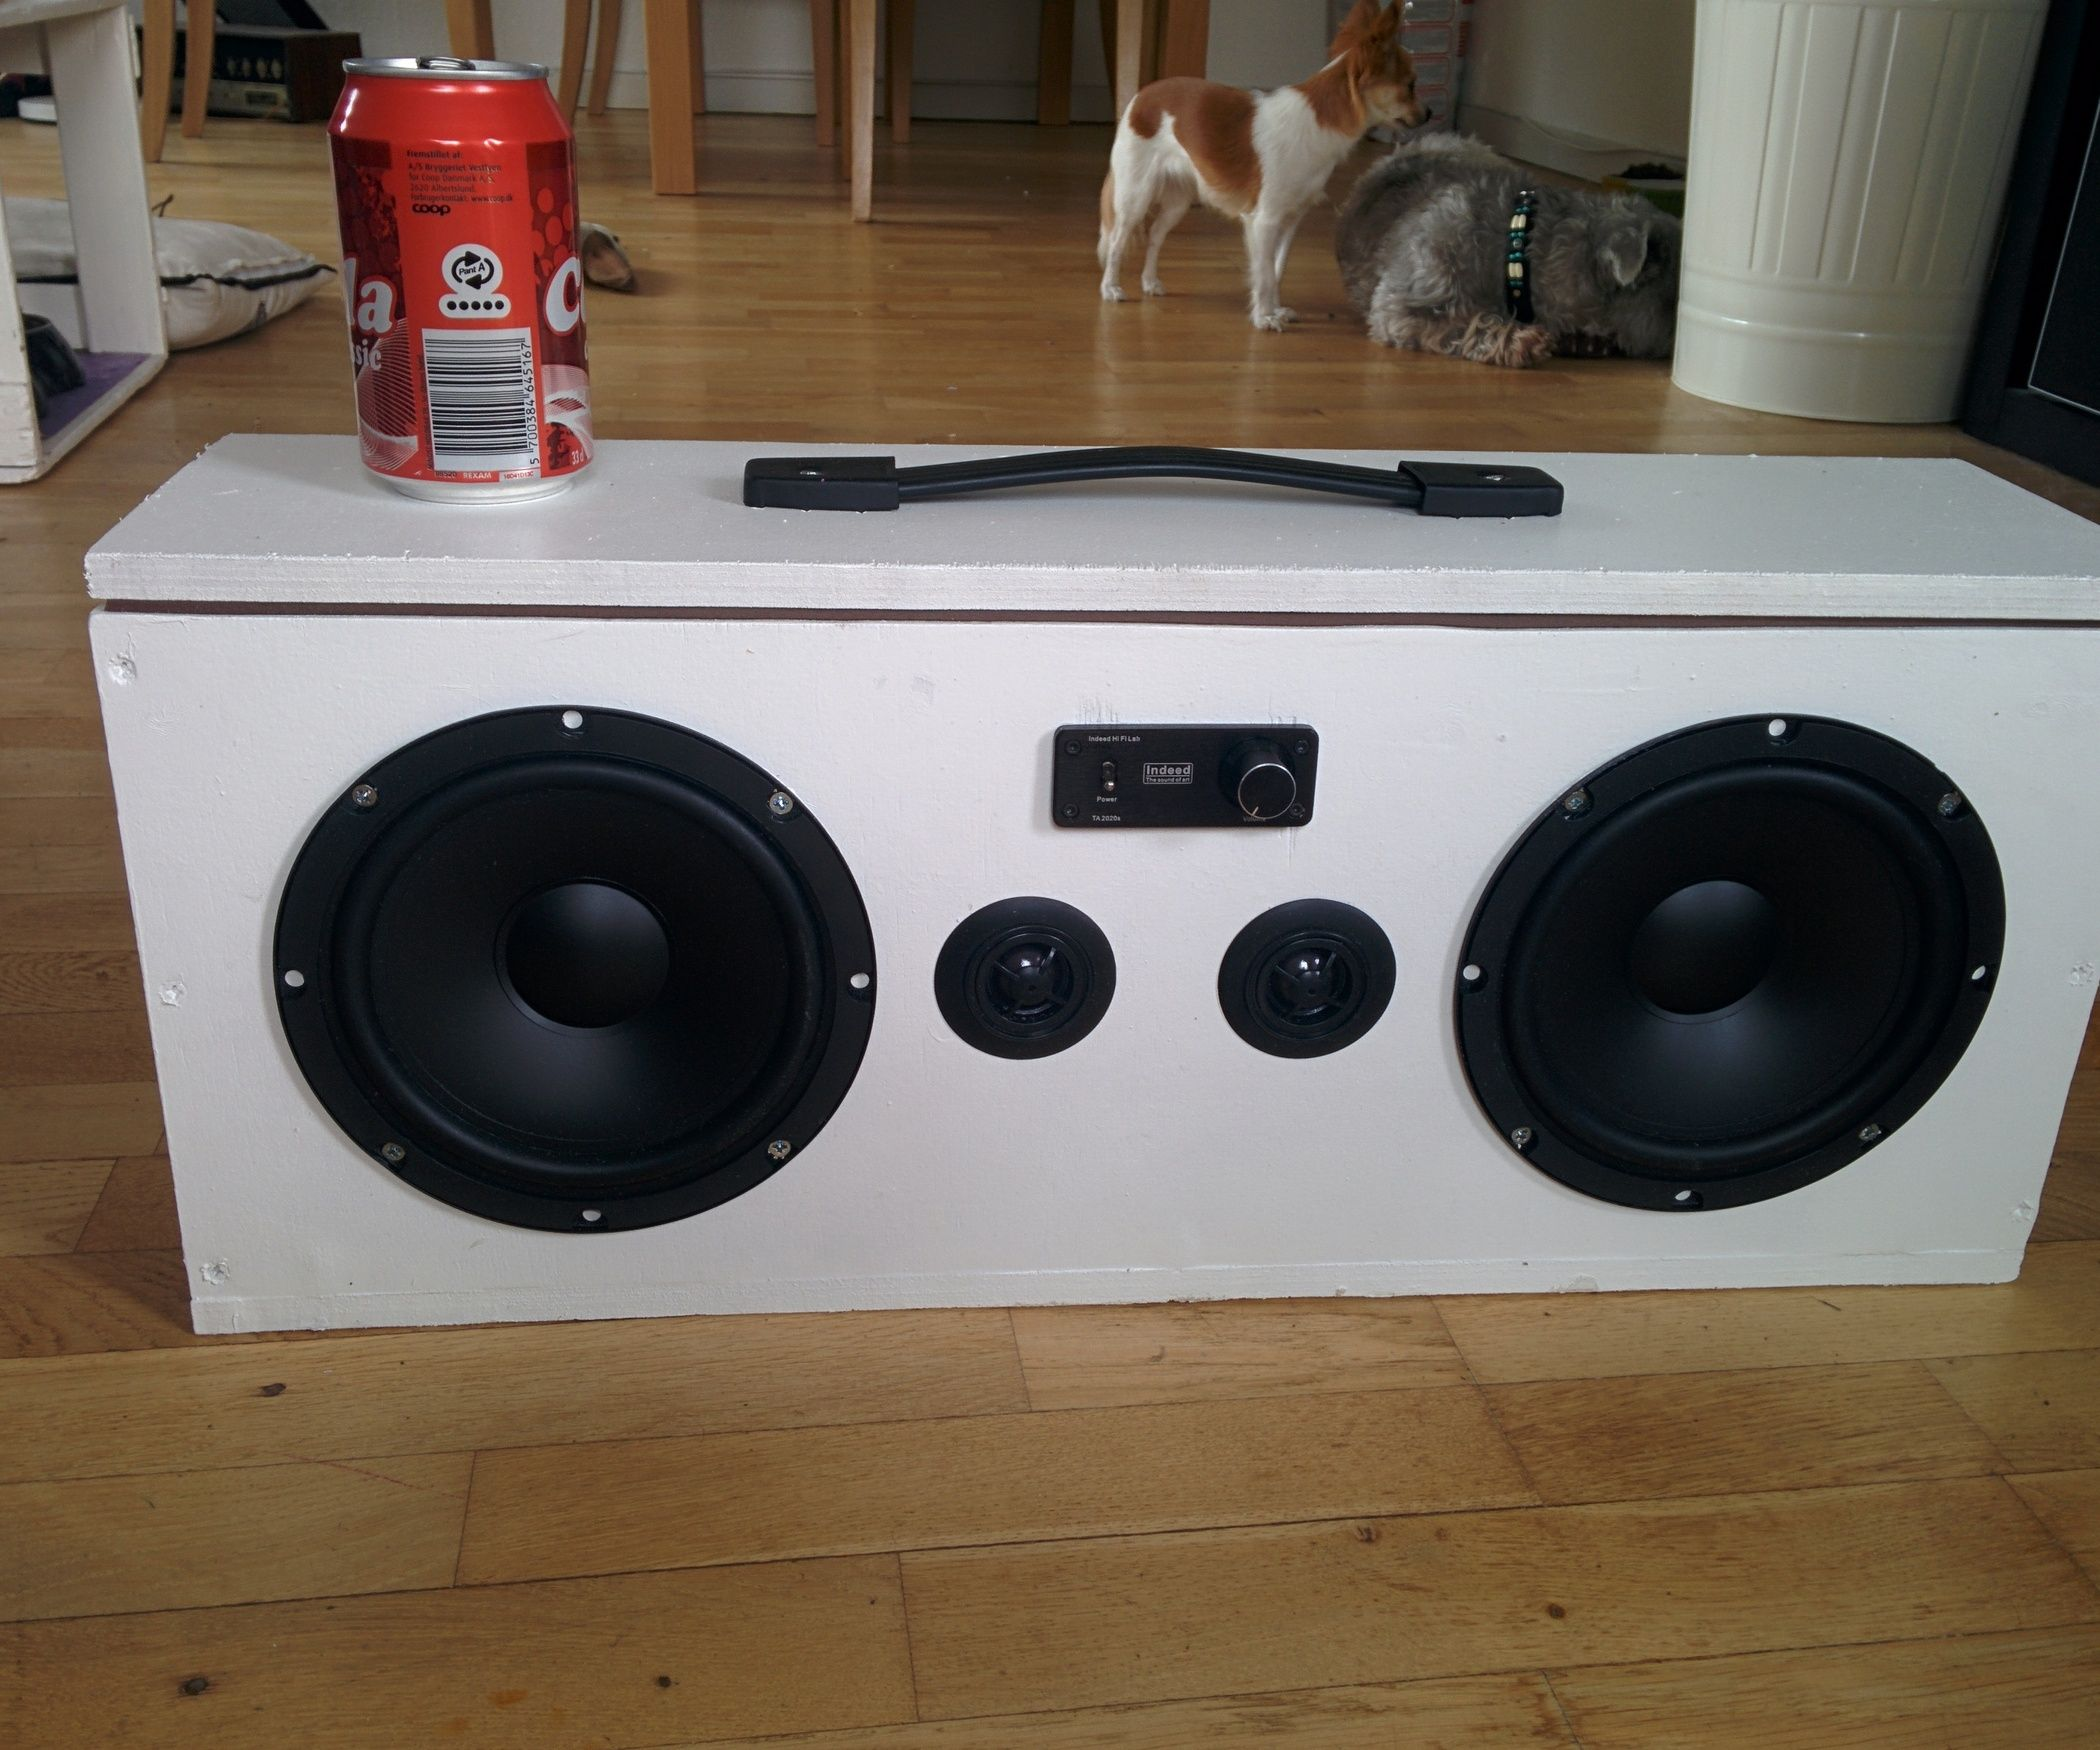 Small Boombox For Less Than 80 Dollars That Packs A Punch